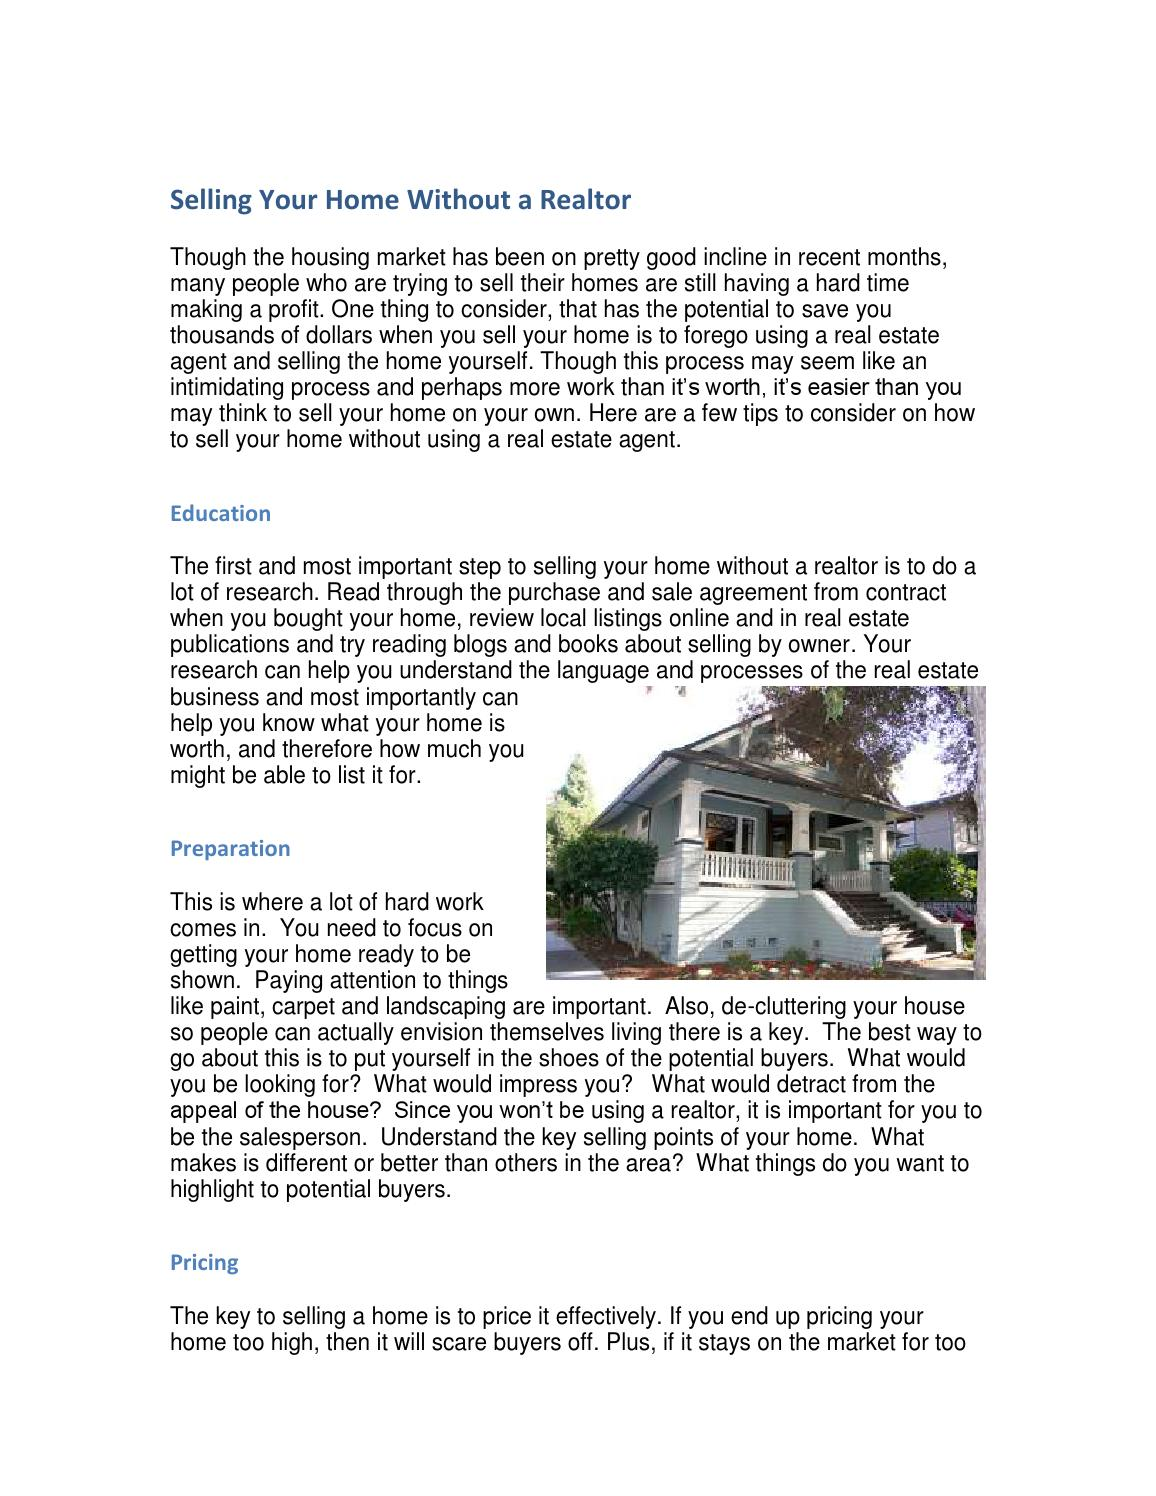 Selling your home without a realtor by mcclain my issuu - Selling your home without a realtor ...